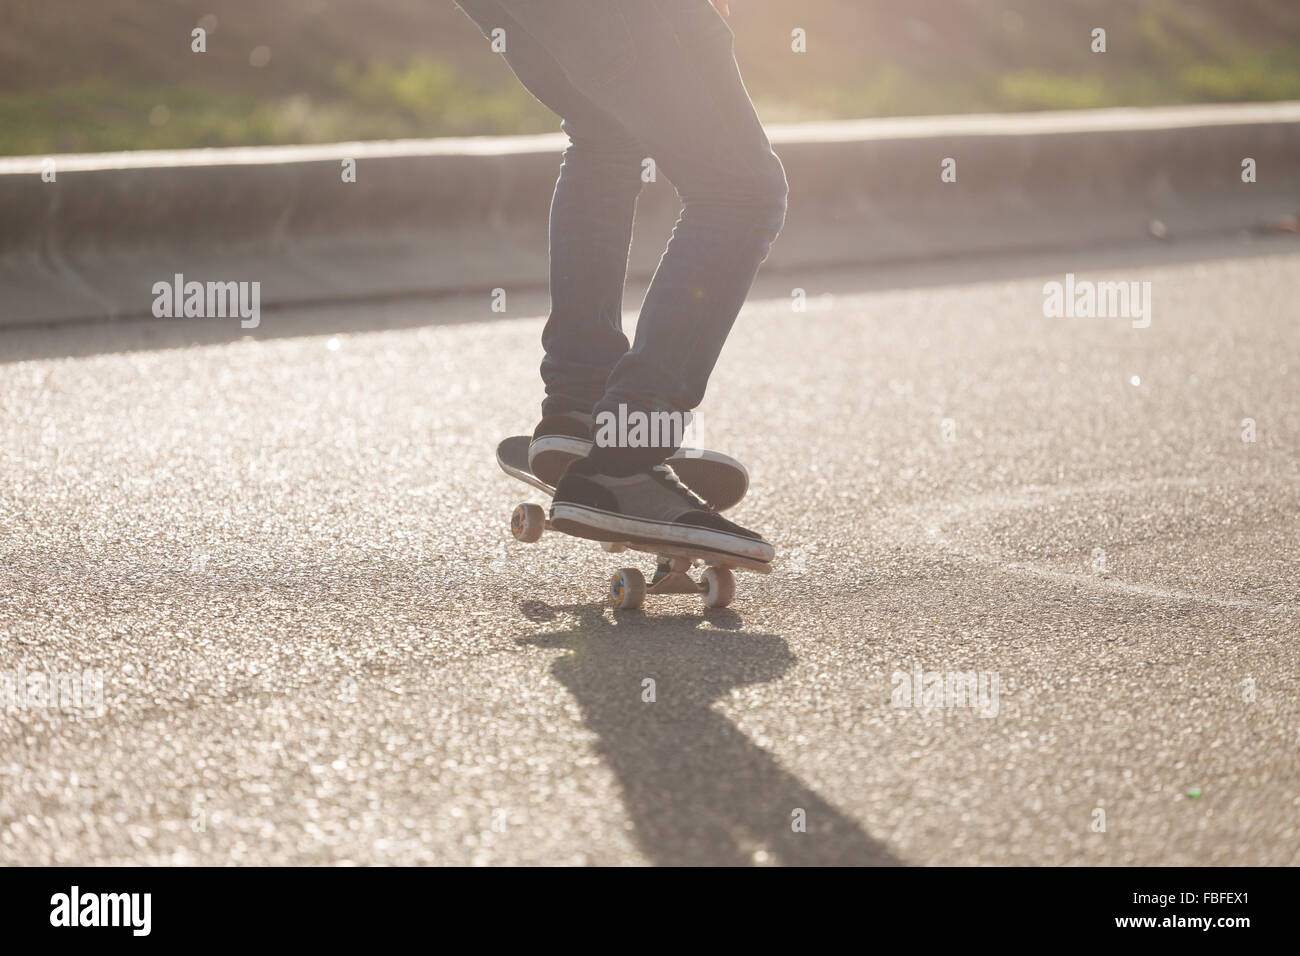 La section basse de Man Skateboarding sur Sunny Day Photo Stock